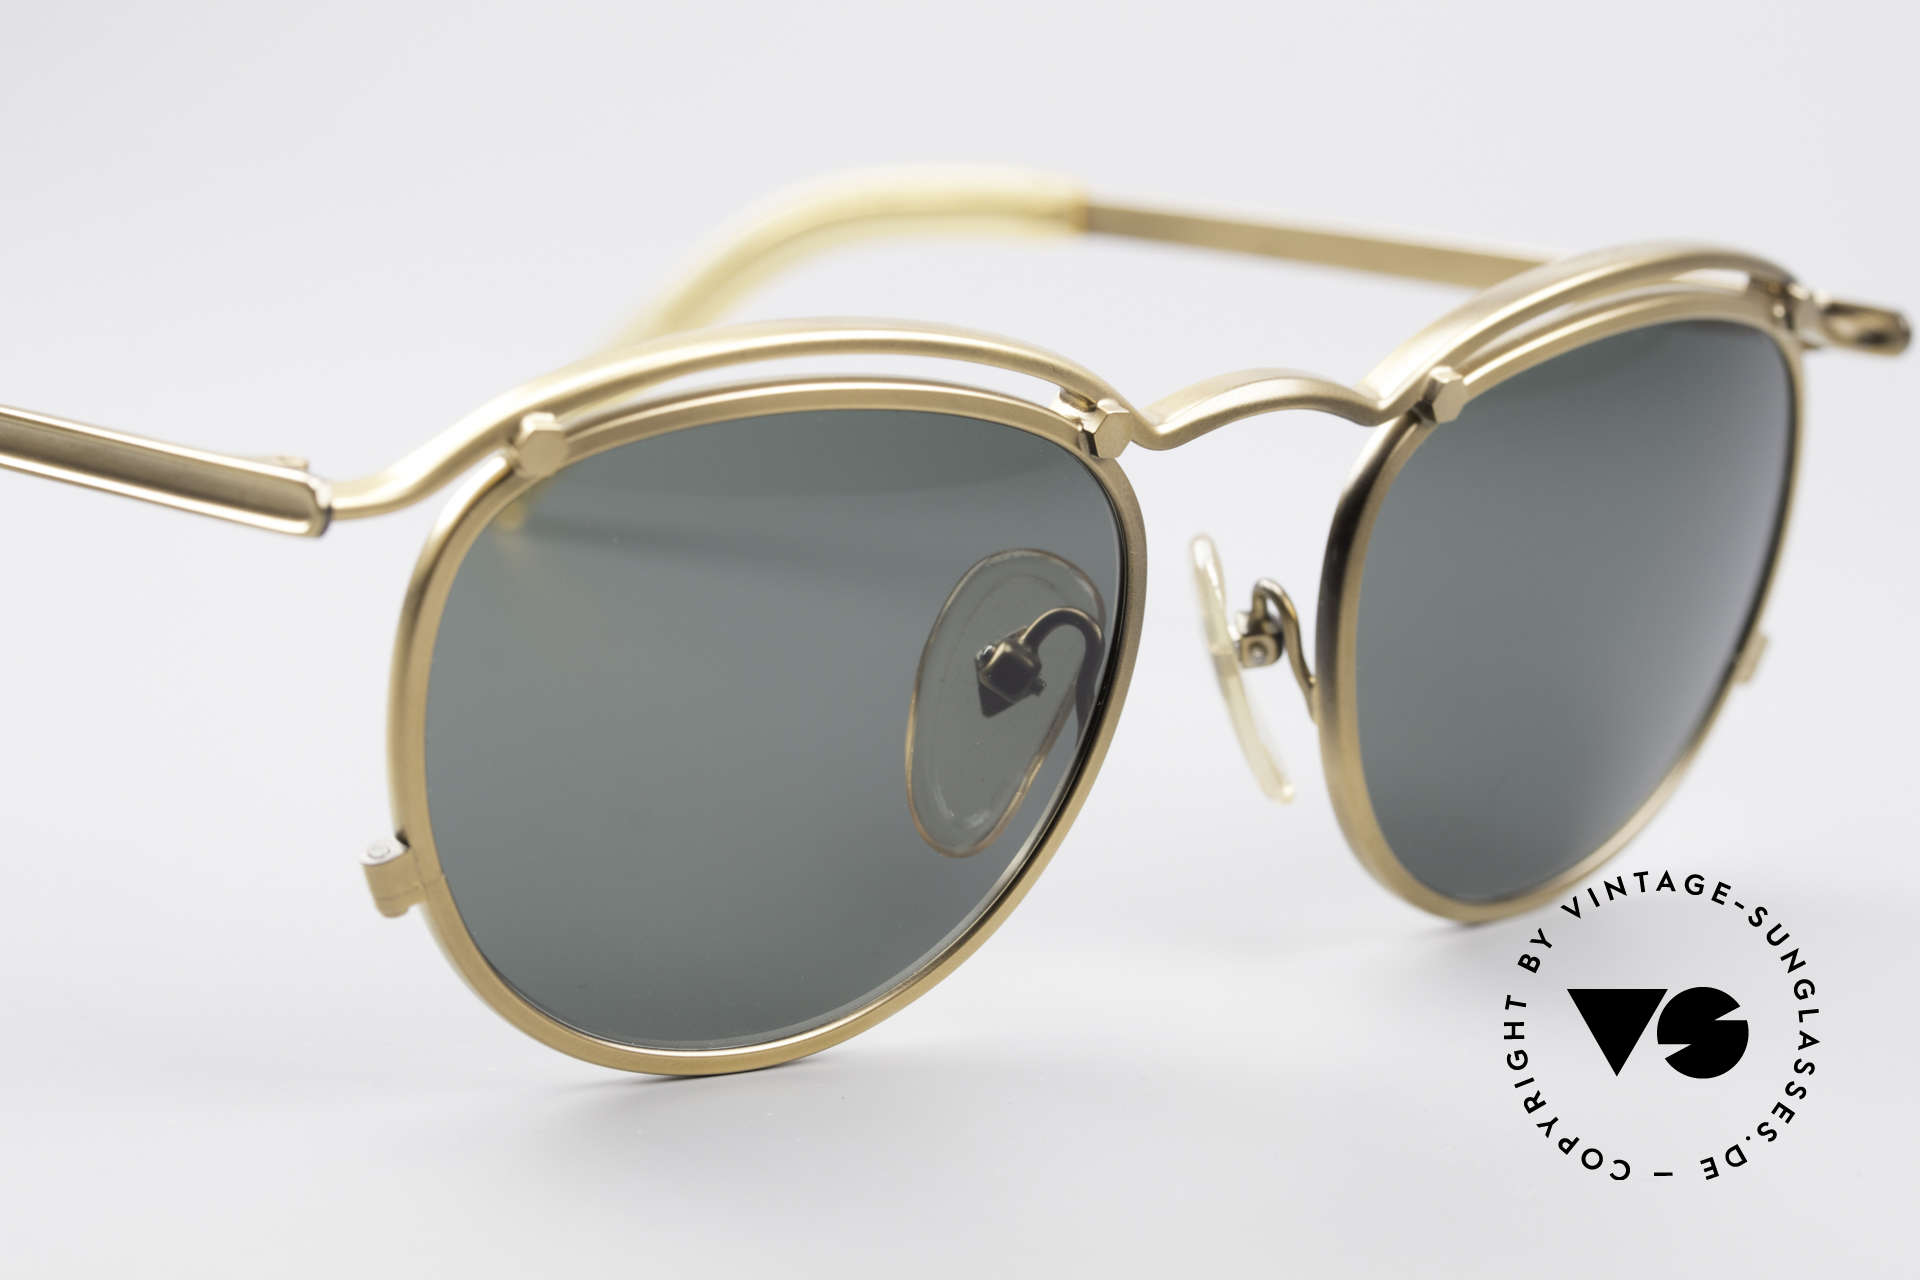 Jean Paul Gaultier 56-1174 Steampunk Panto Shades, NO RETRO shades, but an authentic old 90s Original!, Made for Men and Women